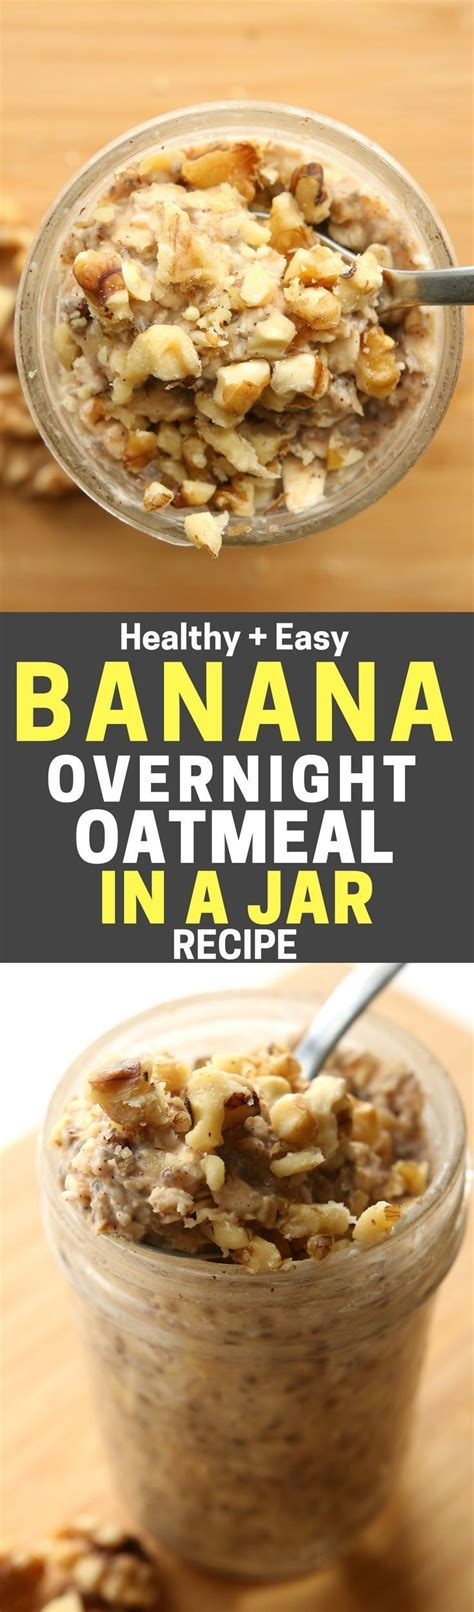 Another overnight oatmeal flavor you need to try is this berry chia overnight oats. Healthy Banana Overnight Oats In A Jar | Recipe | Low calorie overnight oats, Best overnight ...